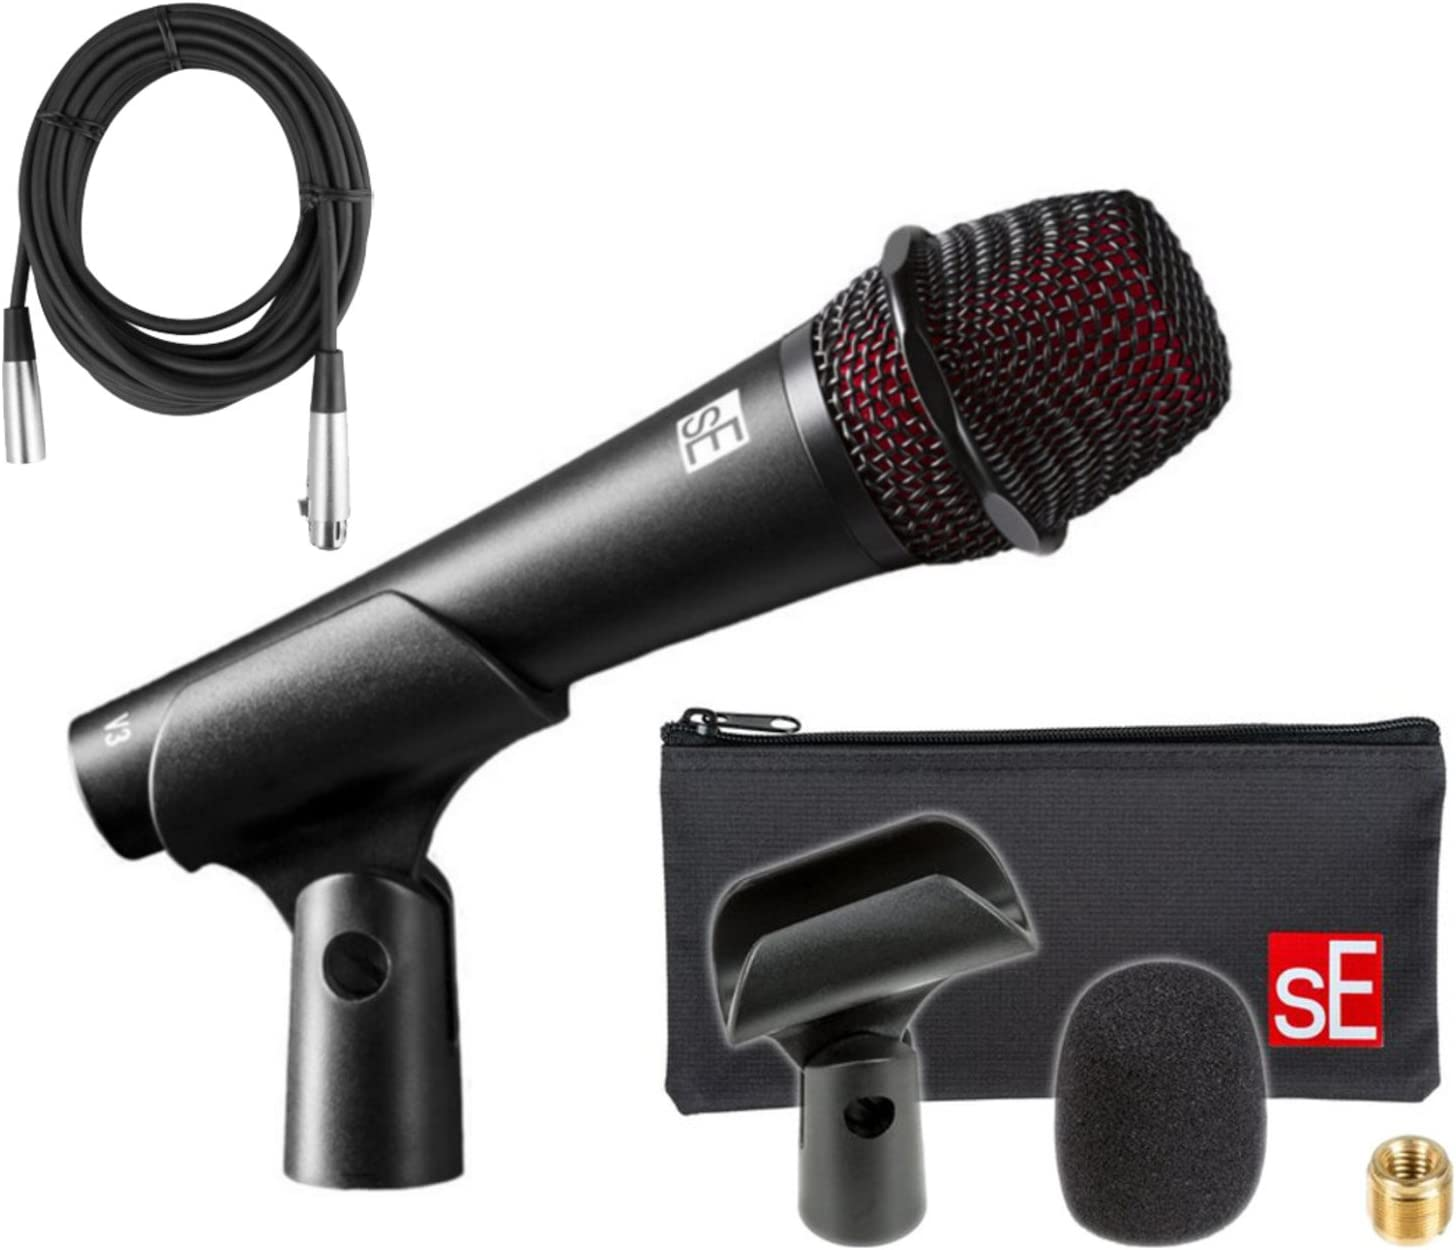 New sE Electronics V3 Dynamic Cardioid Microphone Live Vocal Free XLR Cable